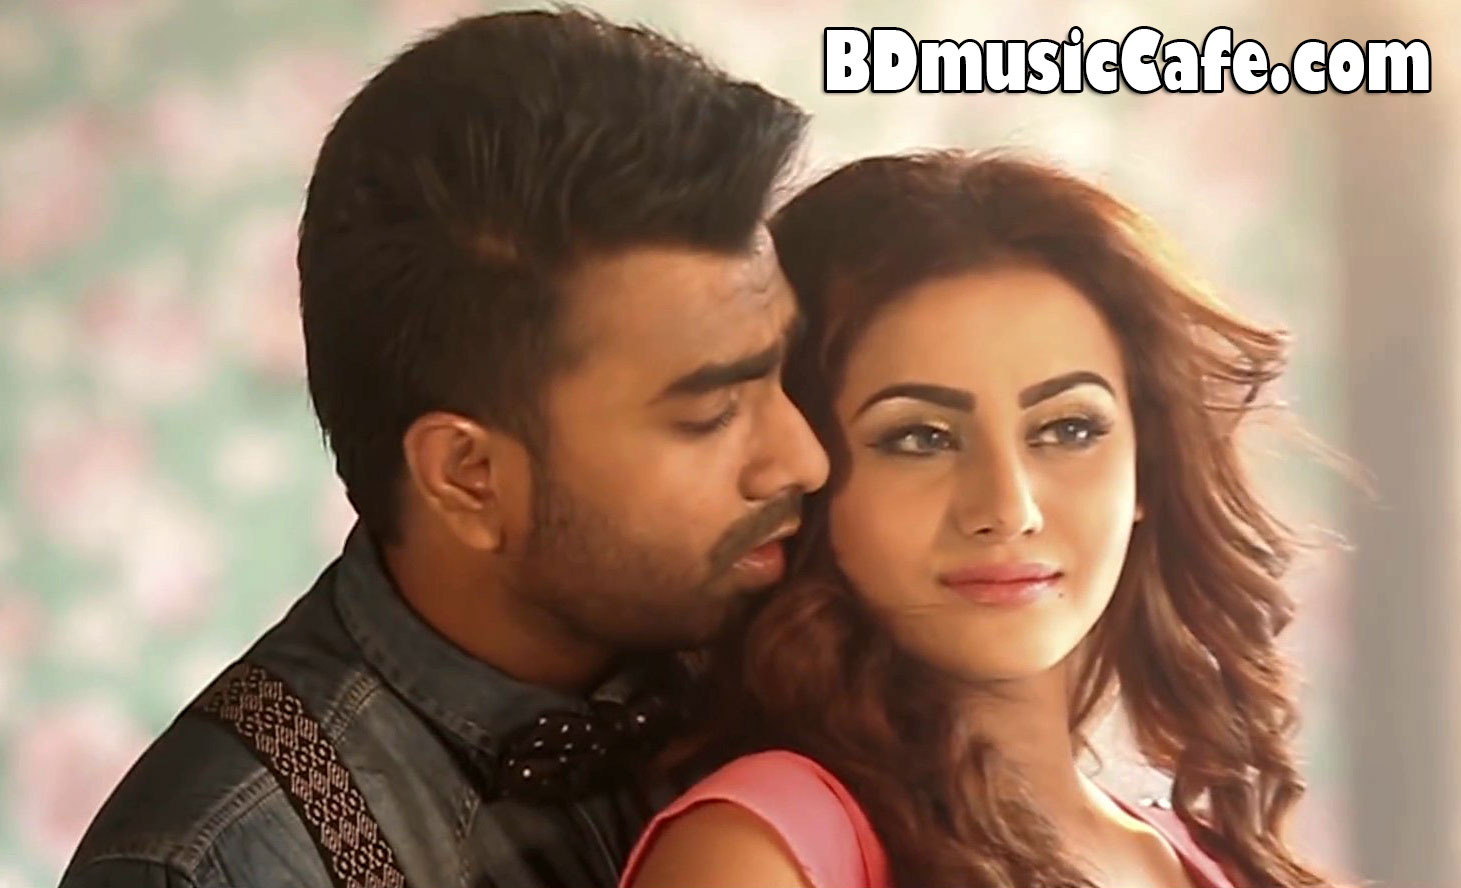 bahudore full mp3 song by imran single bd music cafe